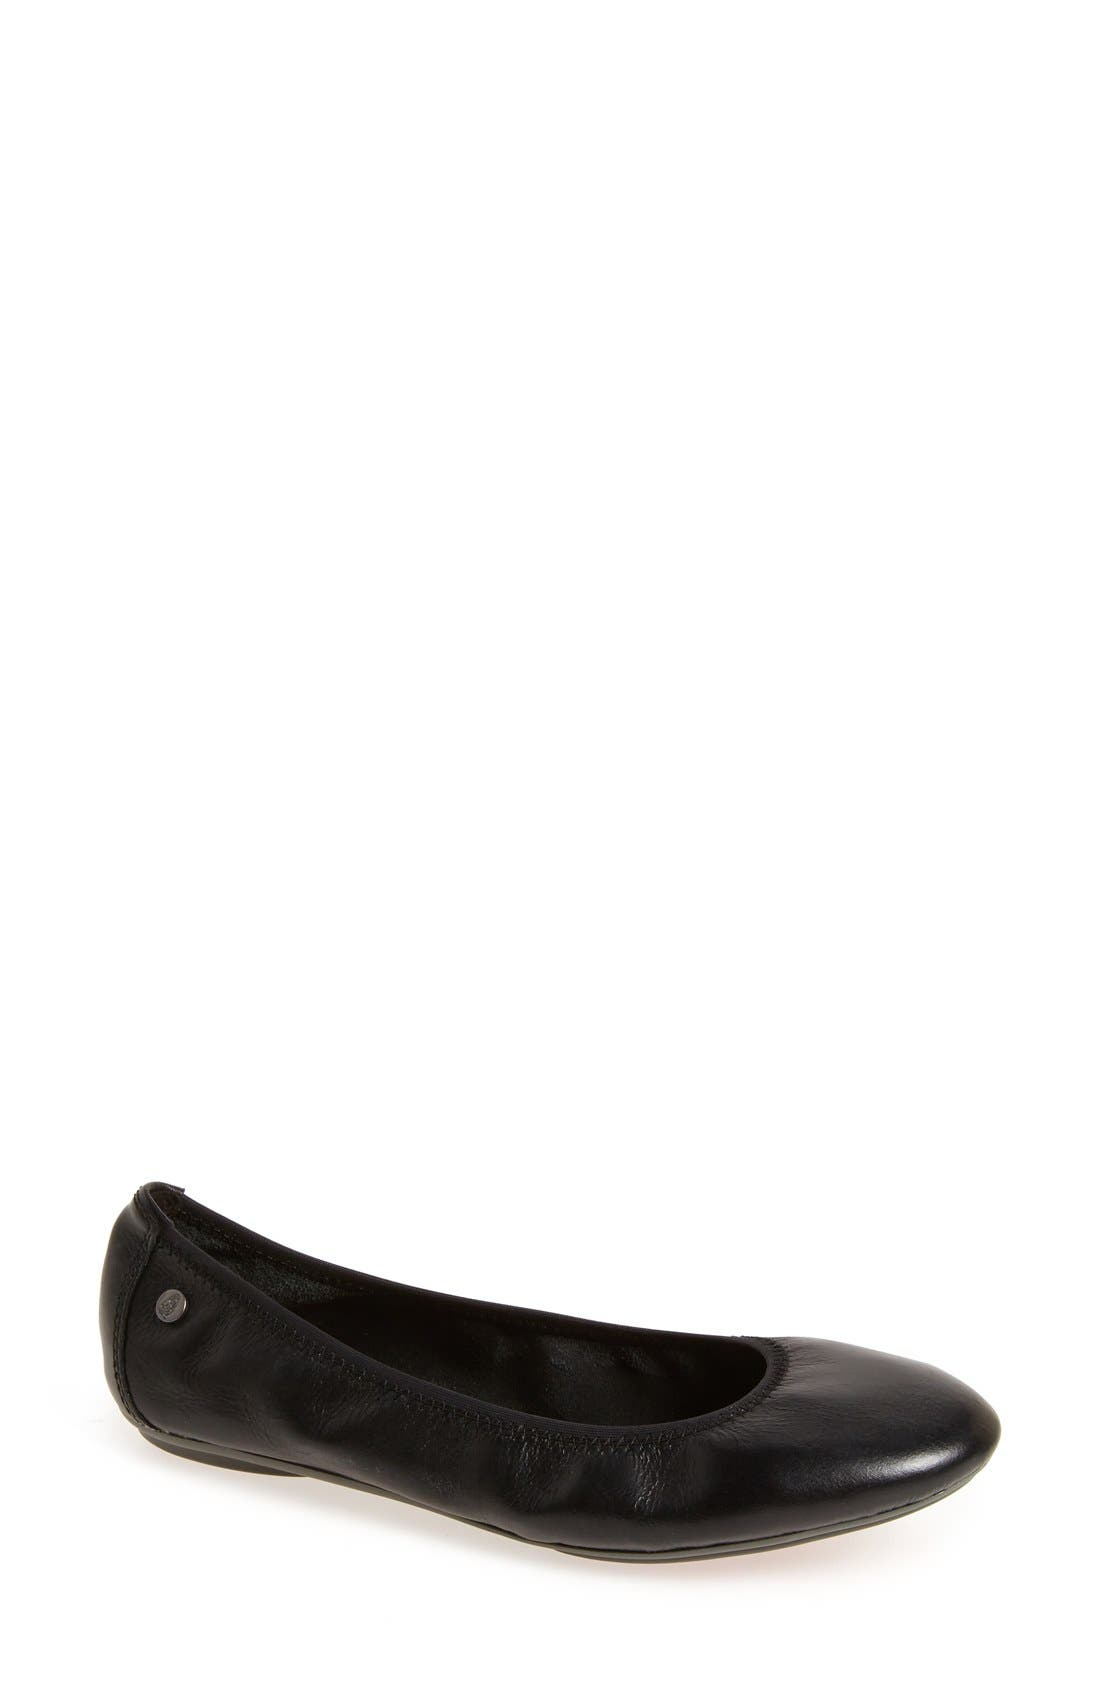 HUSH PUPPIES<SUP>®</SUP> 'Chaste' Ballet Flat, Main, color, BLACK LEATHER